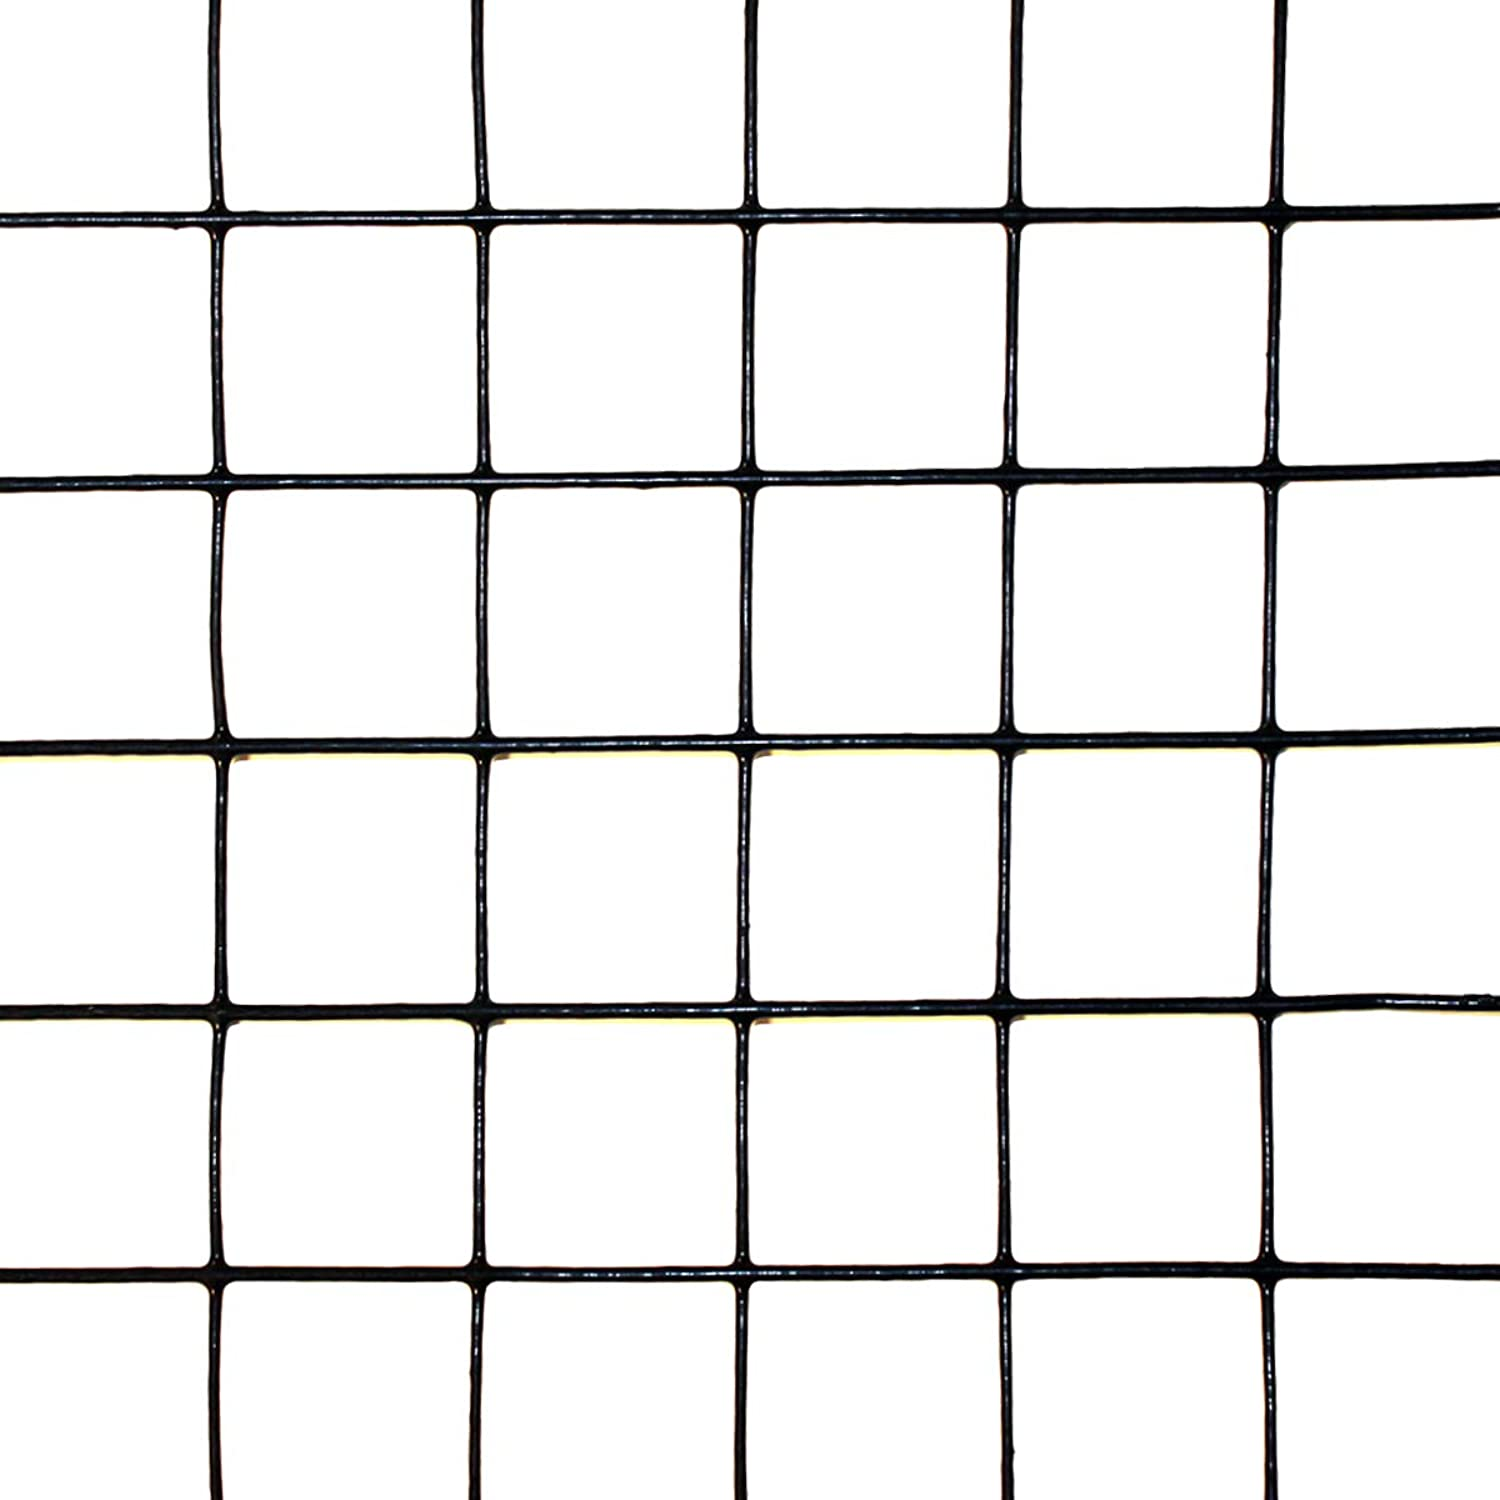 Trident Fence Lobster Trap Wire 1.5 x1.5  16 Gauge PVC Coated 2'x100' Roll